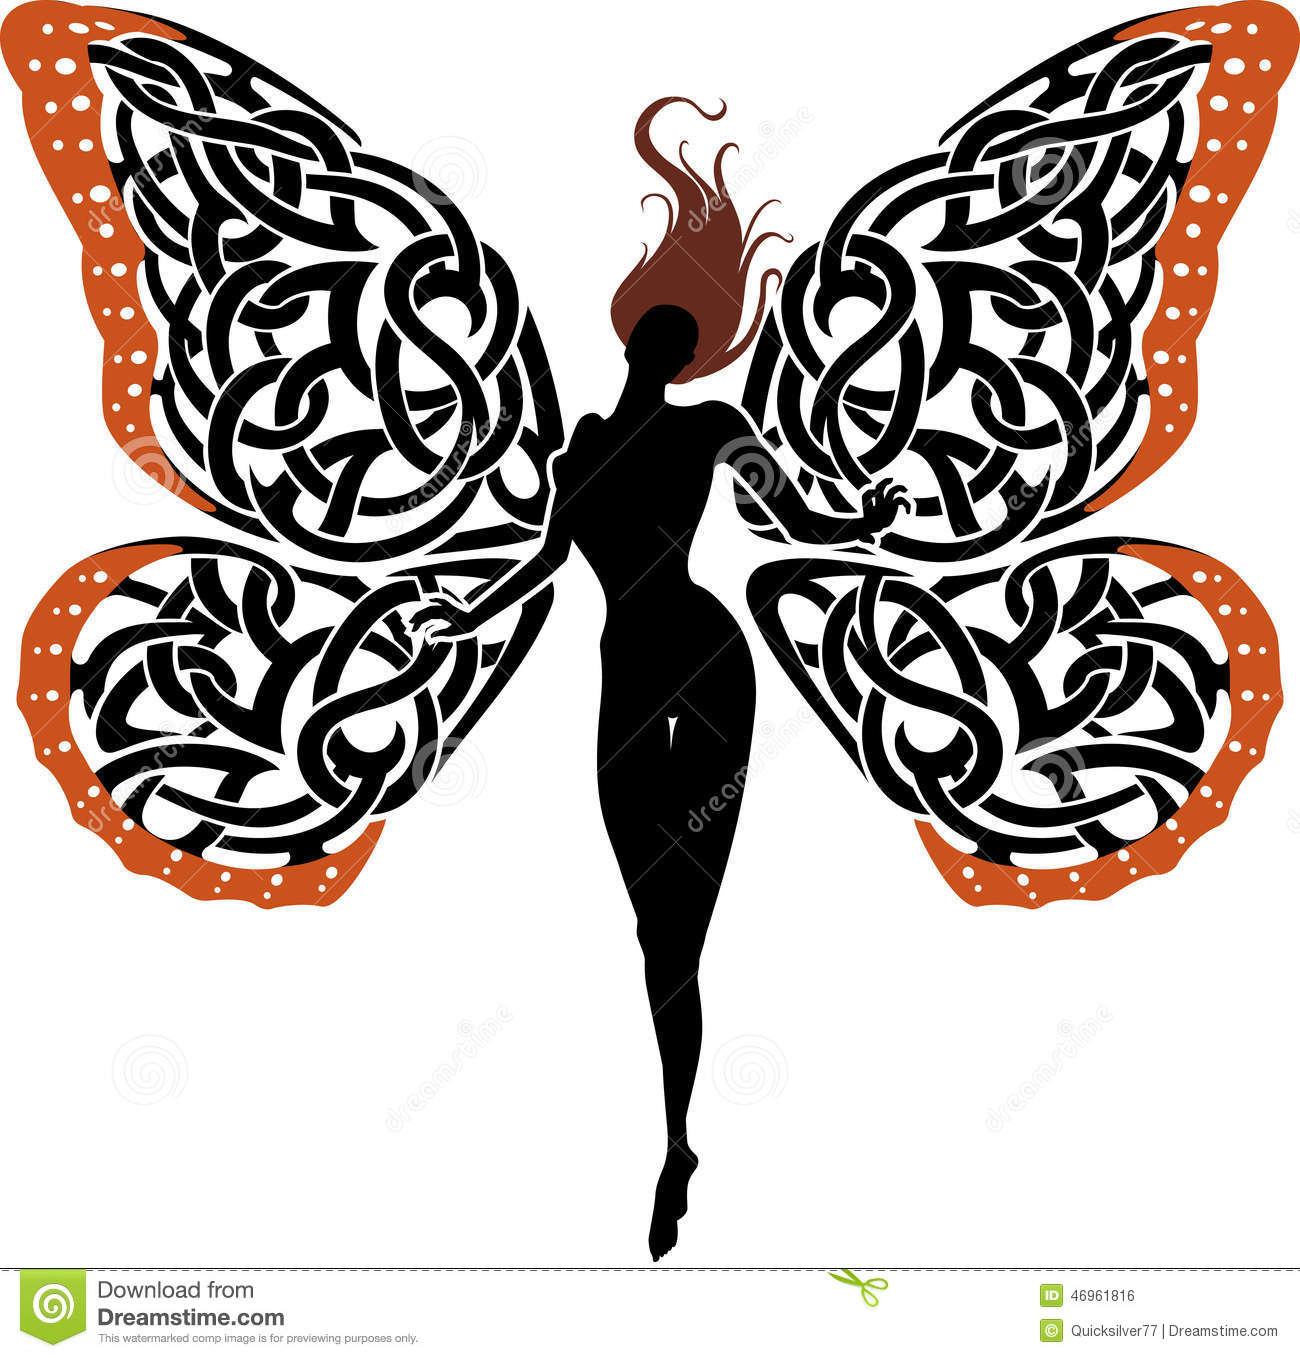 Abstract Fantasy Lady Butterfly Stock Illustration - Image: 46961816 Eagle Silhouette Vector